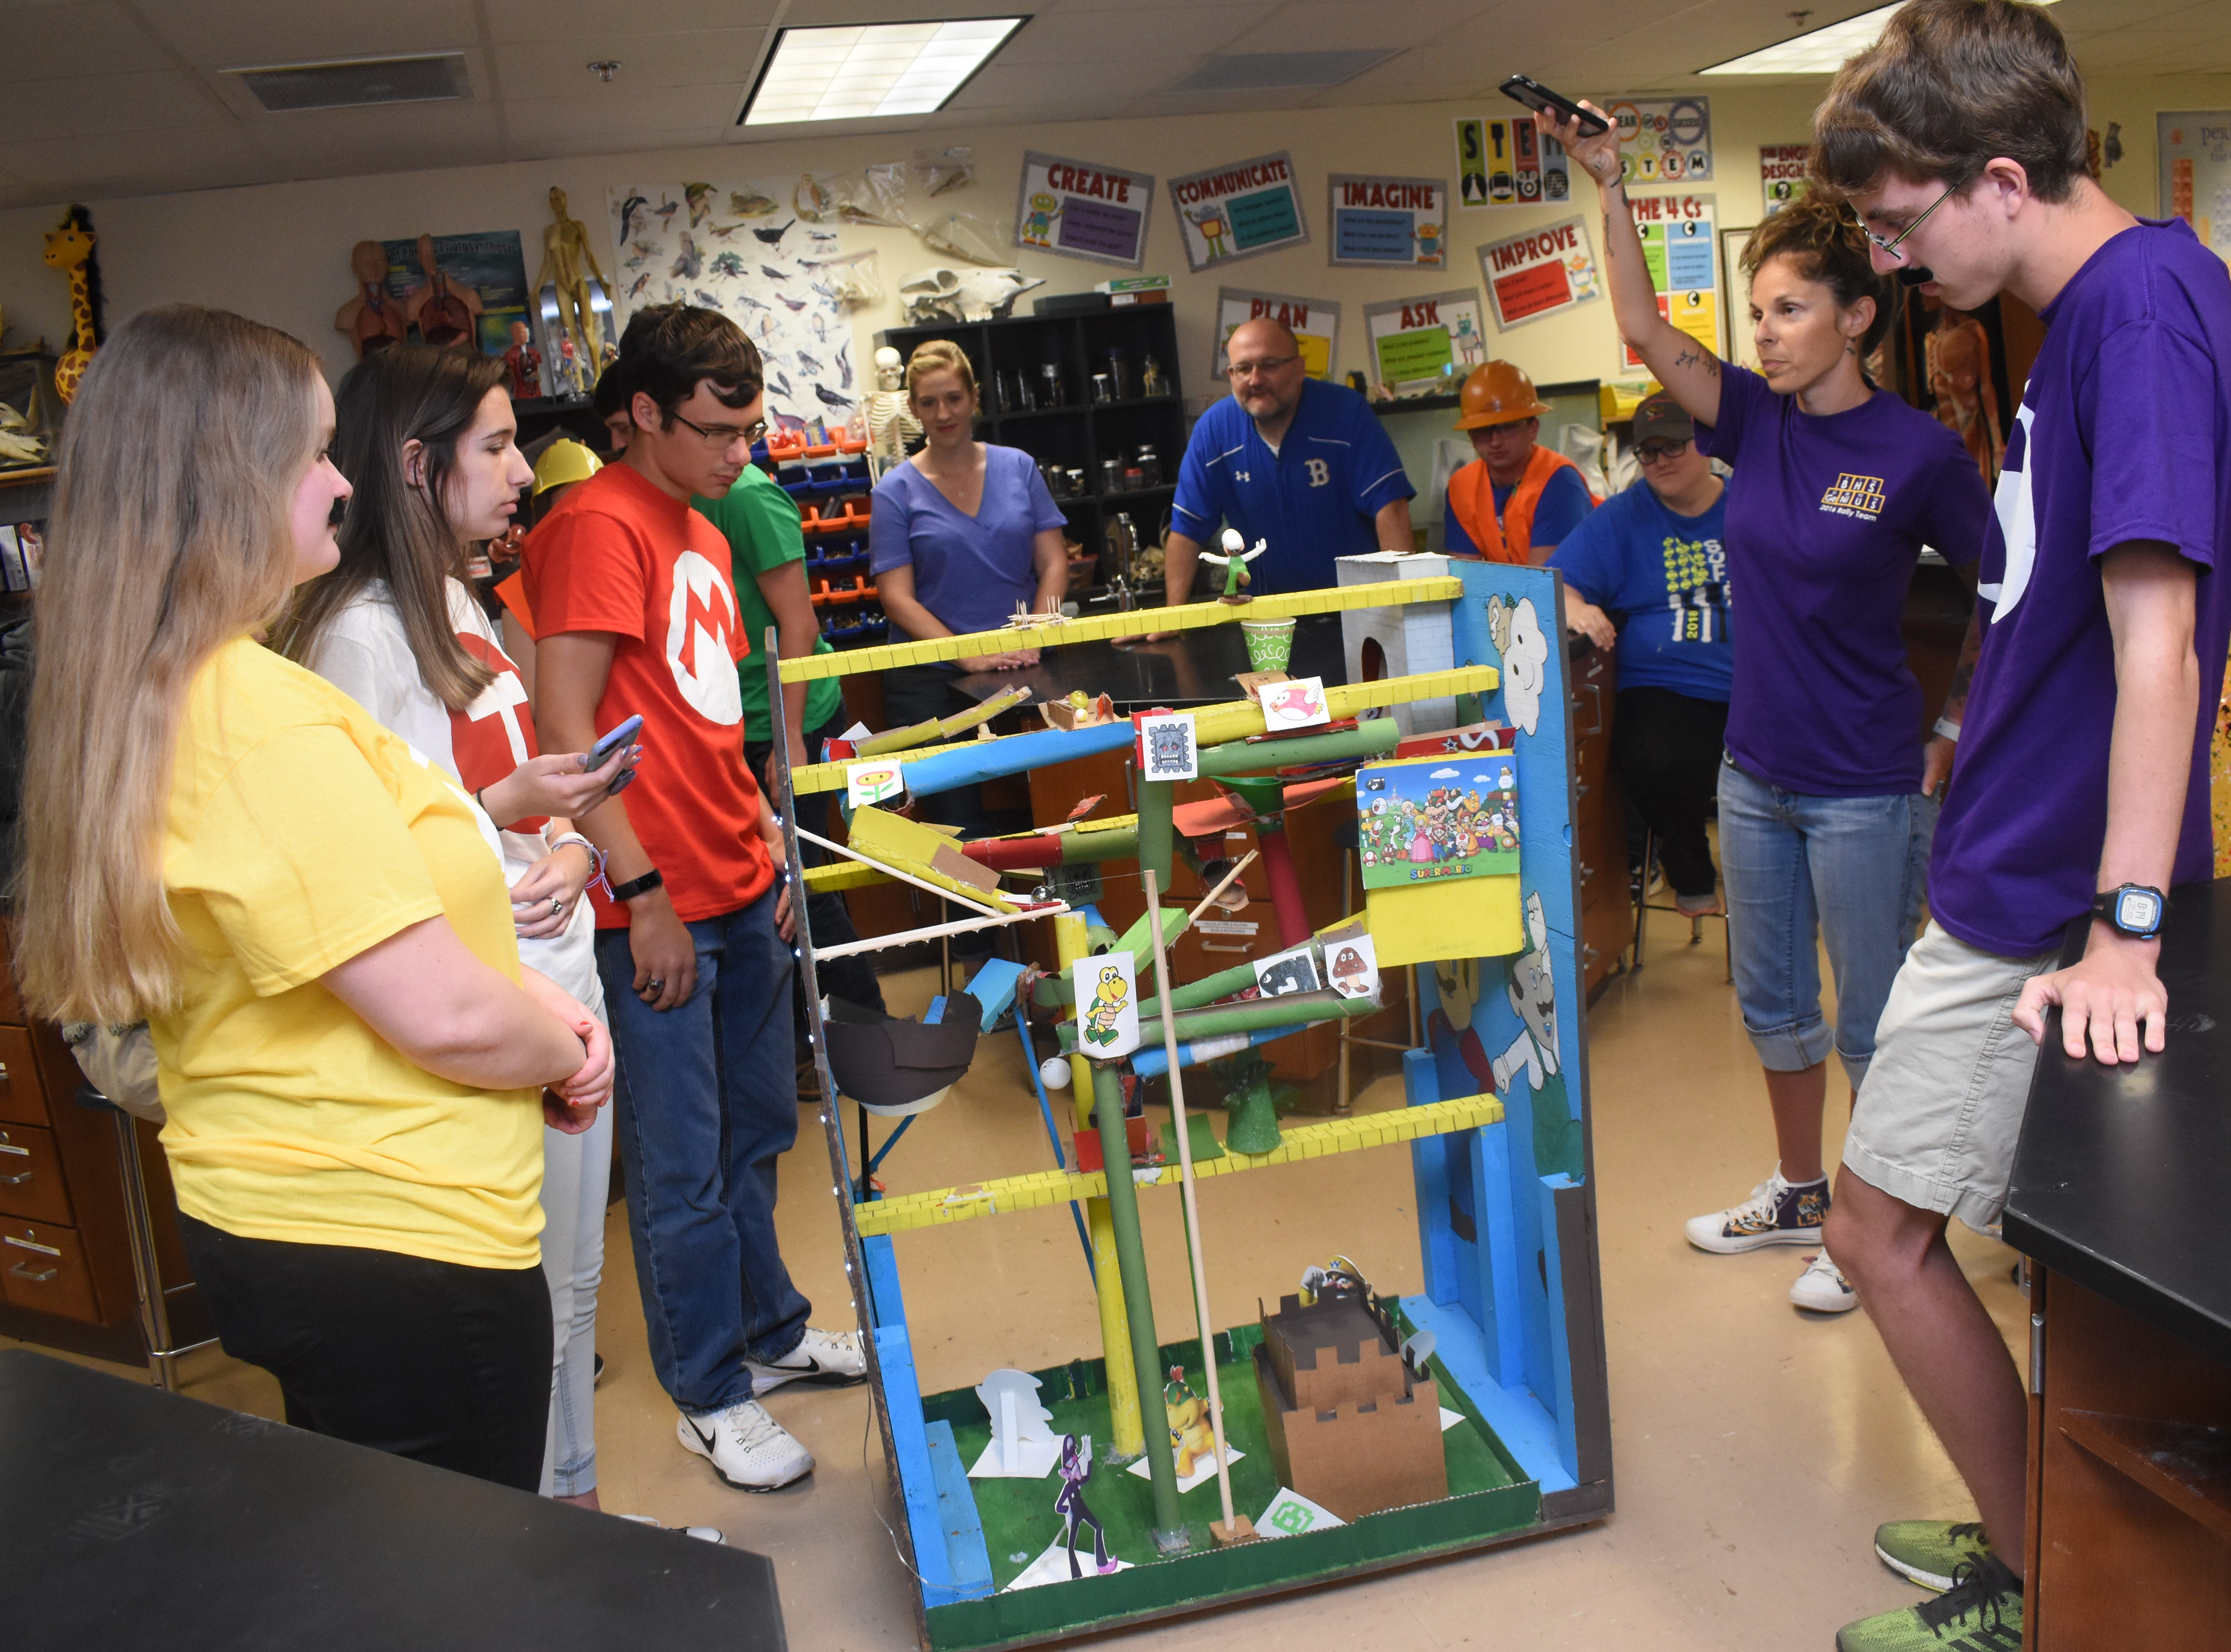 Buckeye High School students in Lacey Hoosier's science class apply S.T.E.M. principles (Science. Technology. Engineering. Math.) in creating Rube Goldberg machines. The Website www.rubegoldberg.com says Rube Goldberg machines are machines designed to do simple tasks in a complex manner. For example, a simple task for one of the groups in the class was getting the machine to put an Alka-Seltzer tablet in a cup of water. The machines were designed by inventor and cartoonist Rube Goldberg.